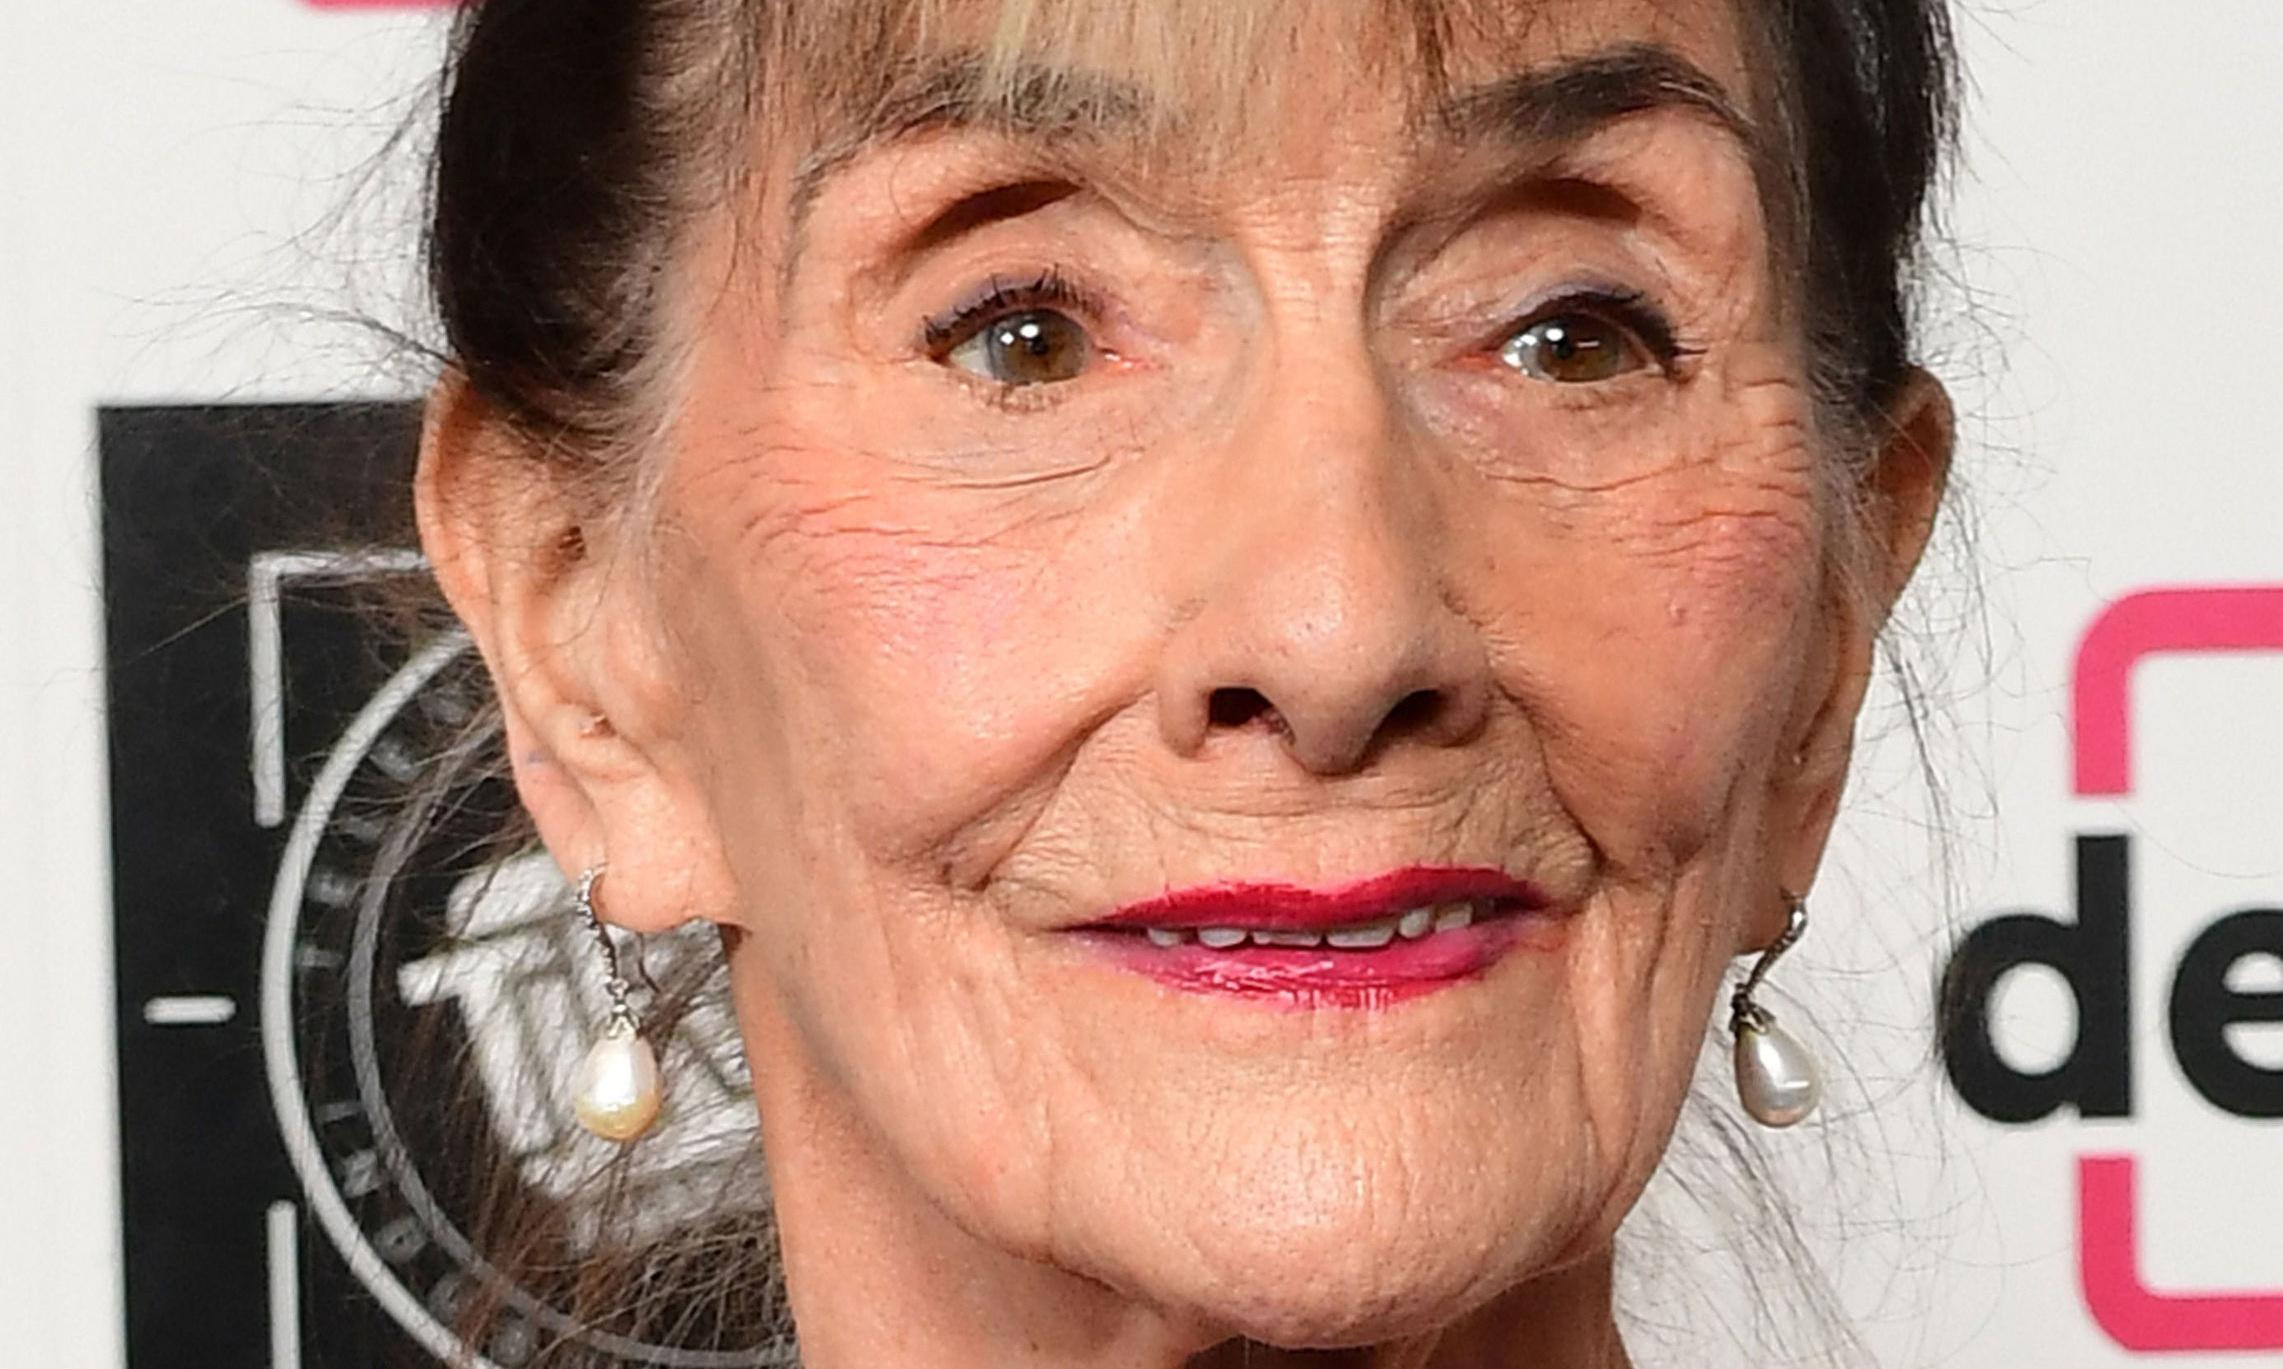 June Brown is right. Old age is the time to embrace bad habits, not kick them